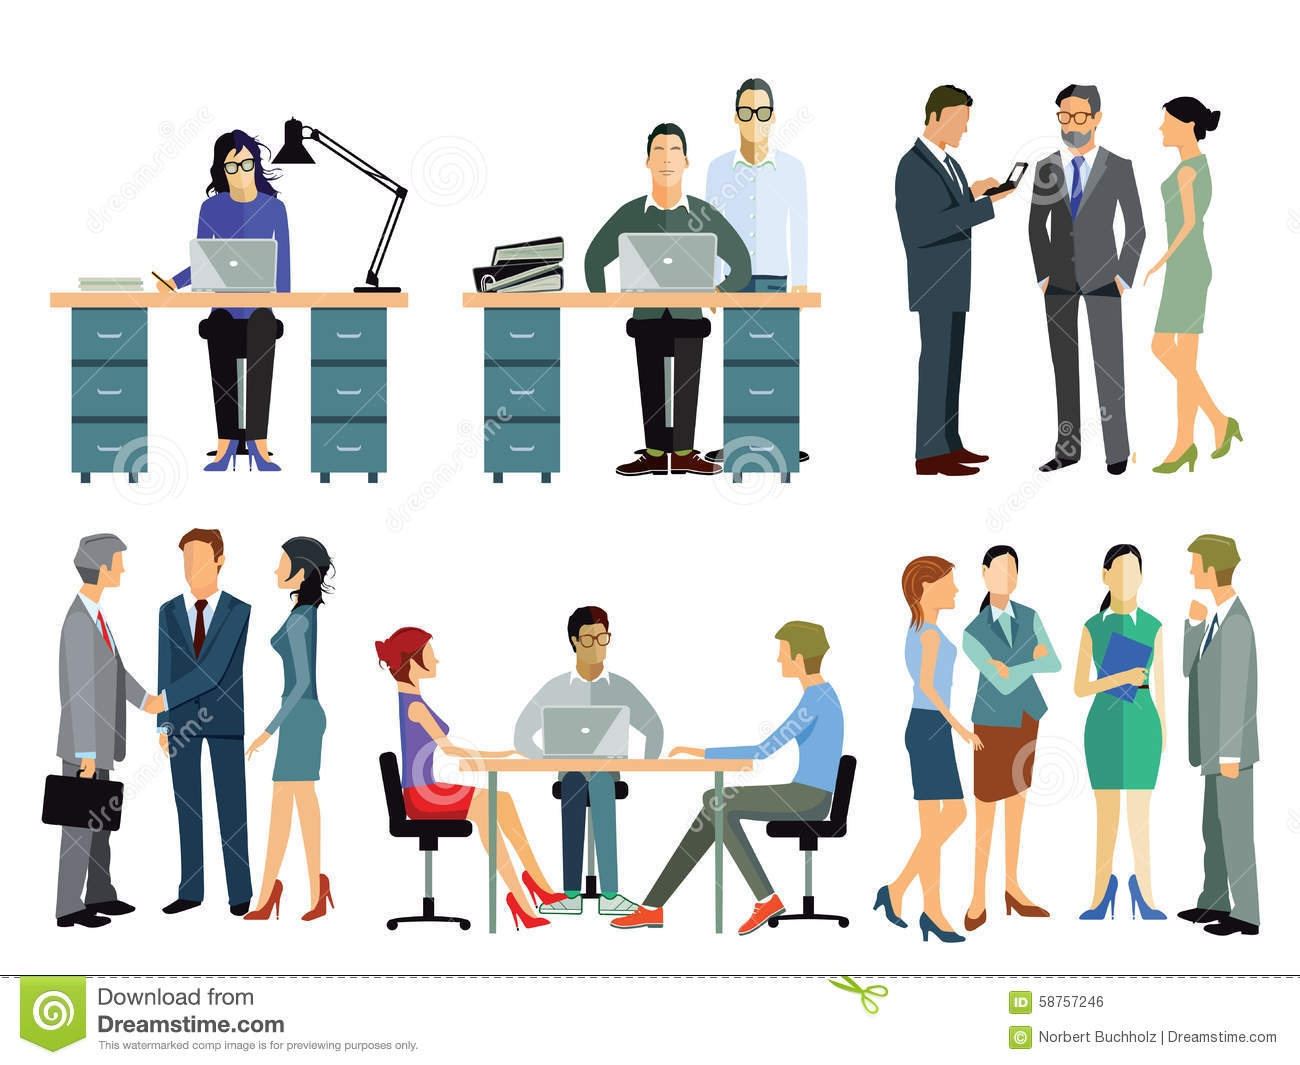 Office clipart office environment Clipart Page Office Environment Clip